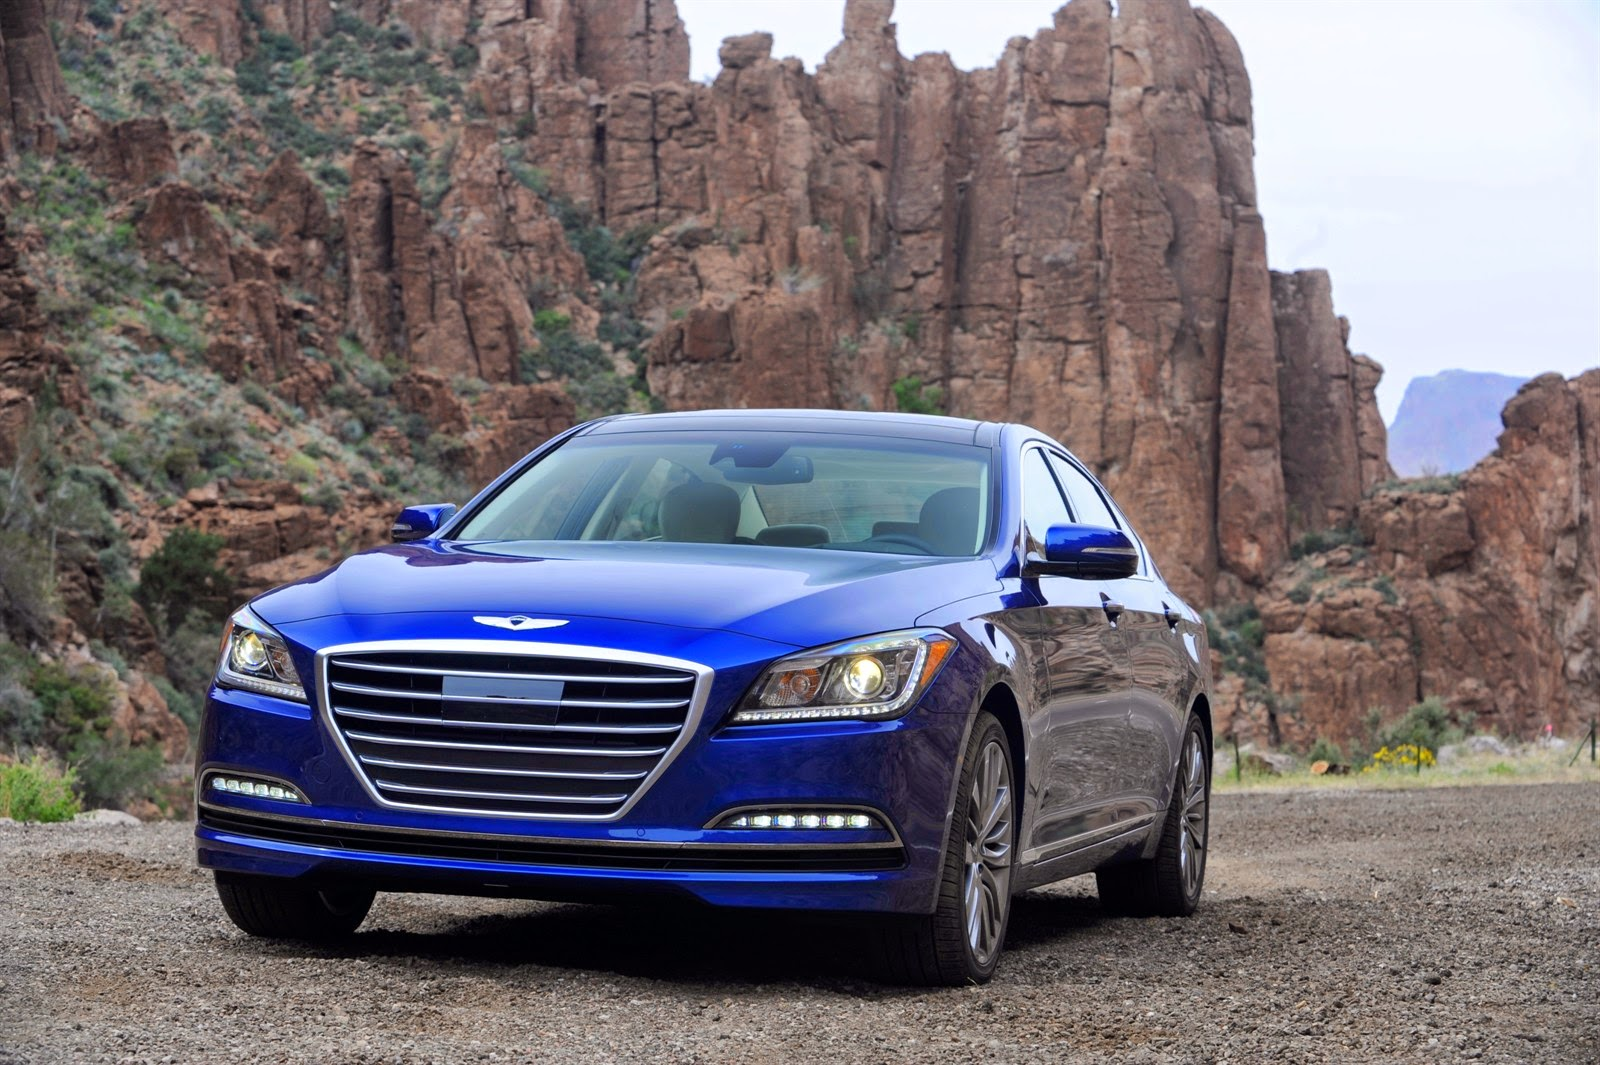 A new beginning: Hyundai's reworked Genesis